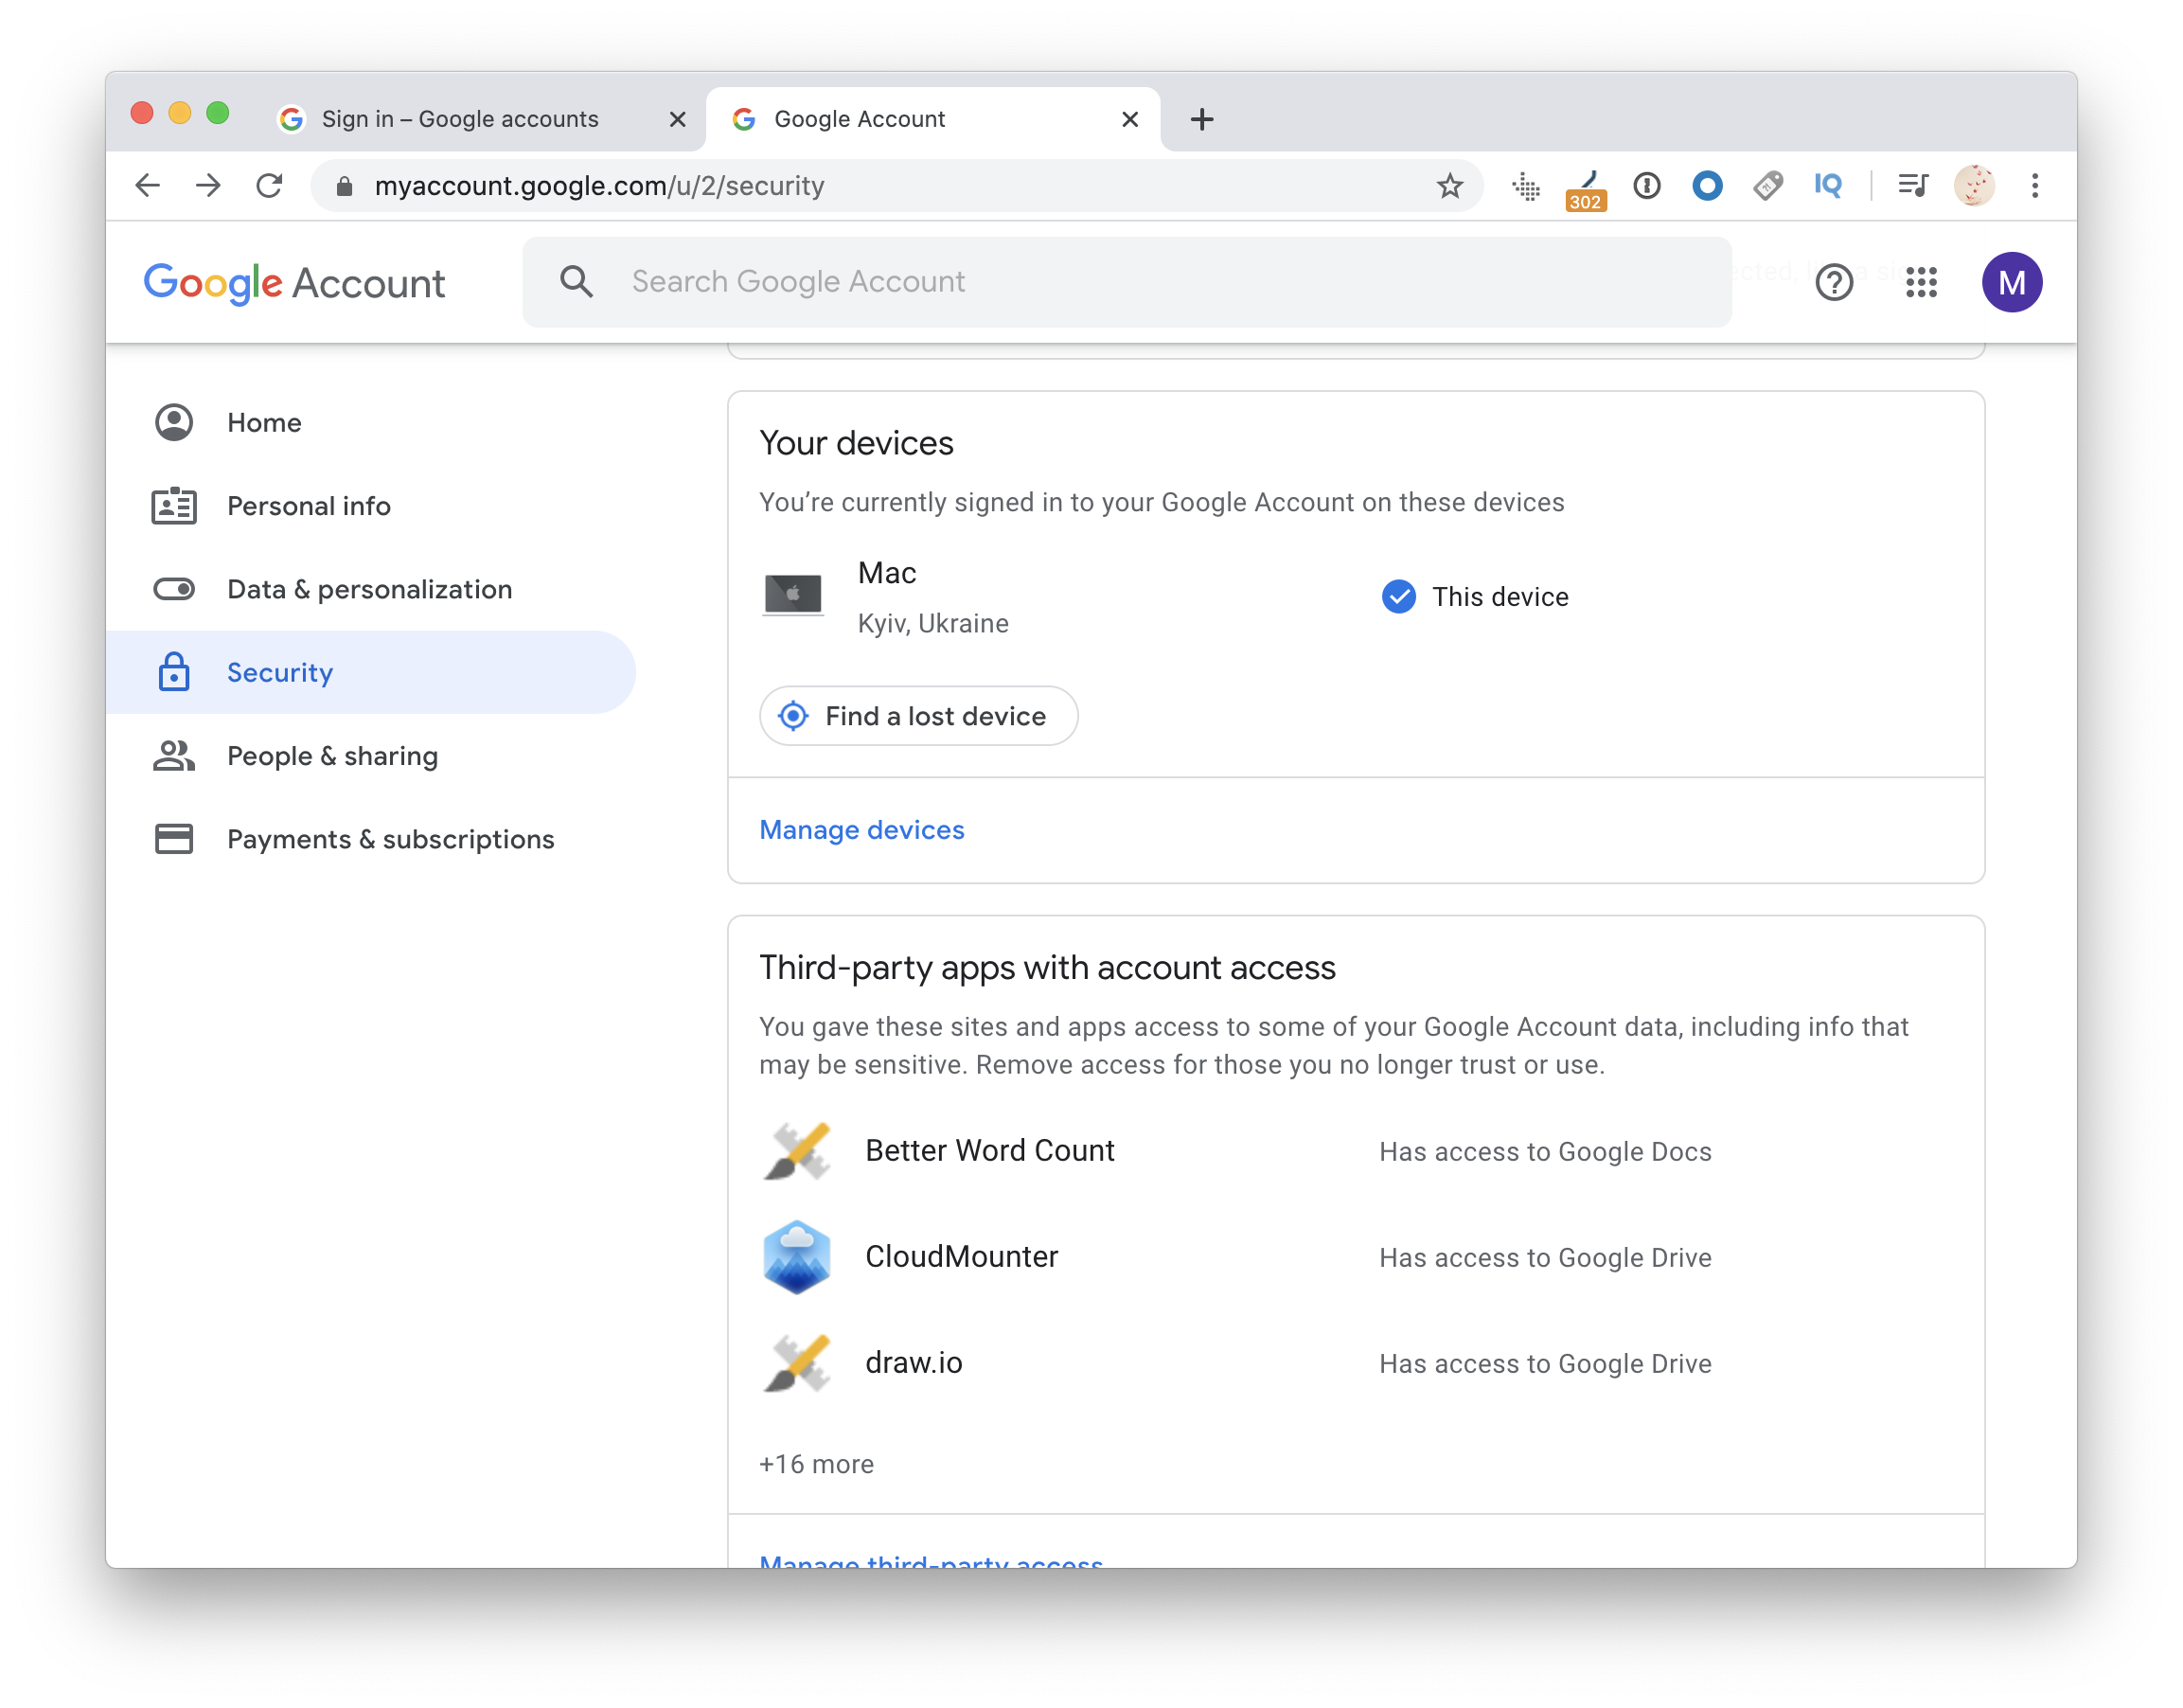 Devices connected to your gmail account